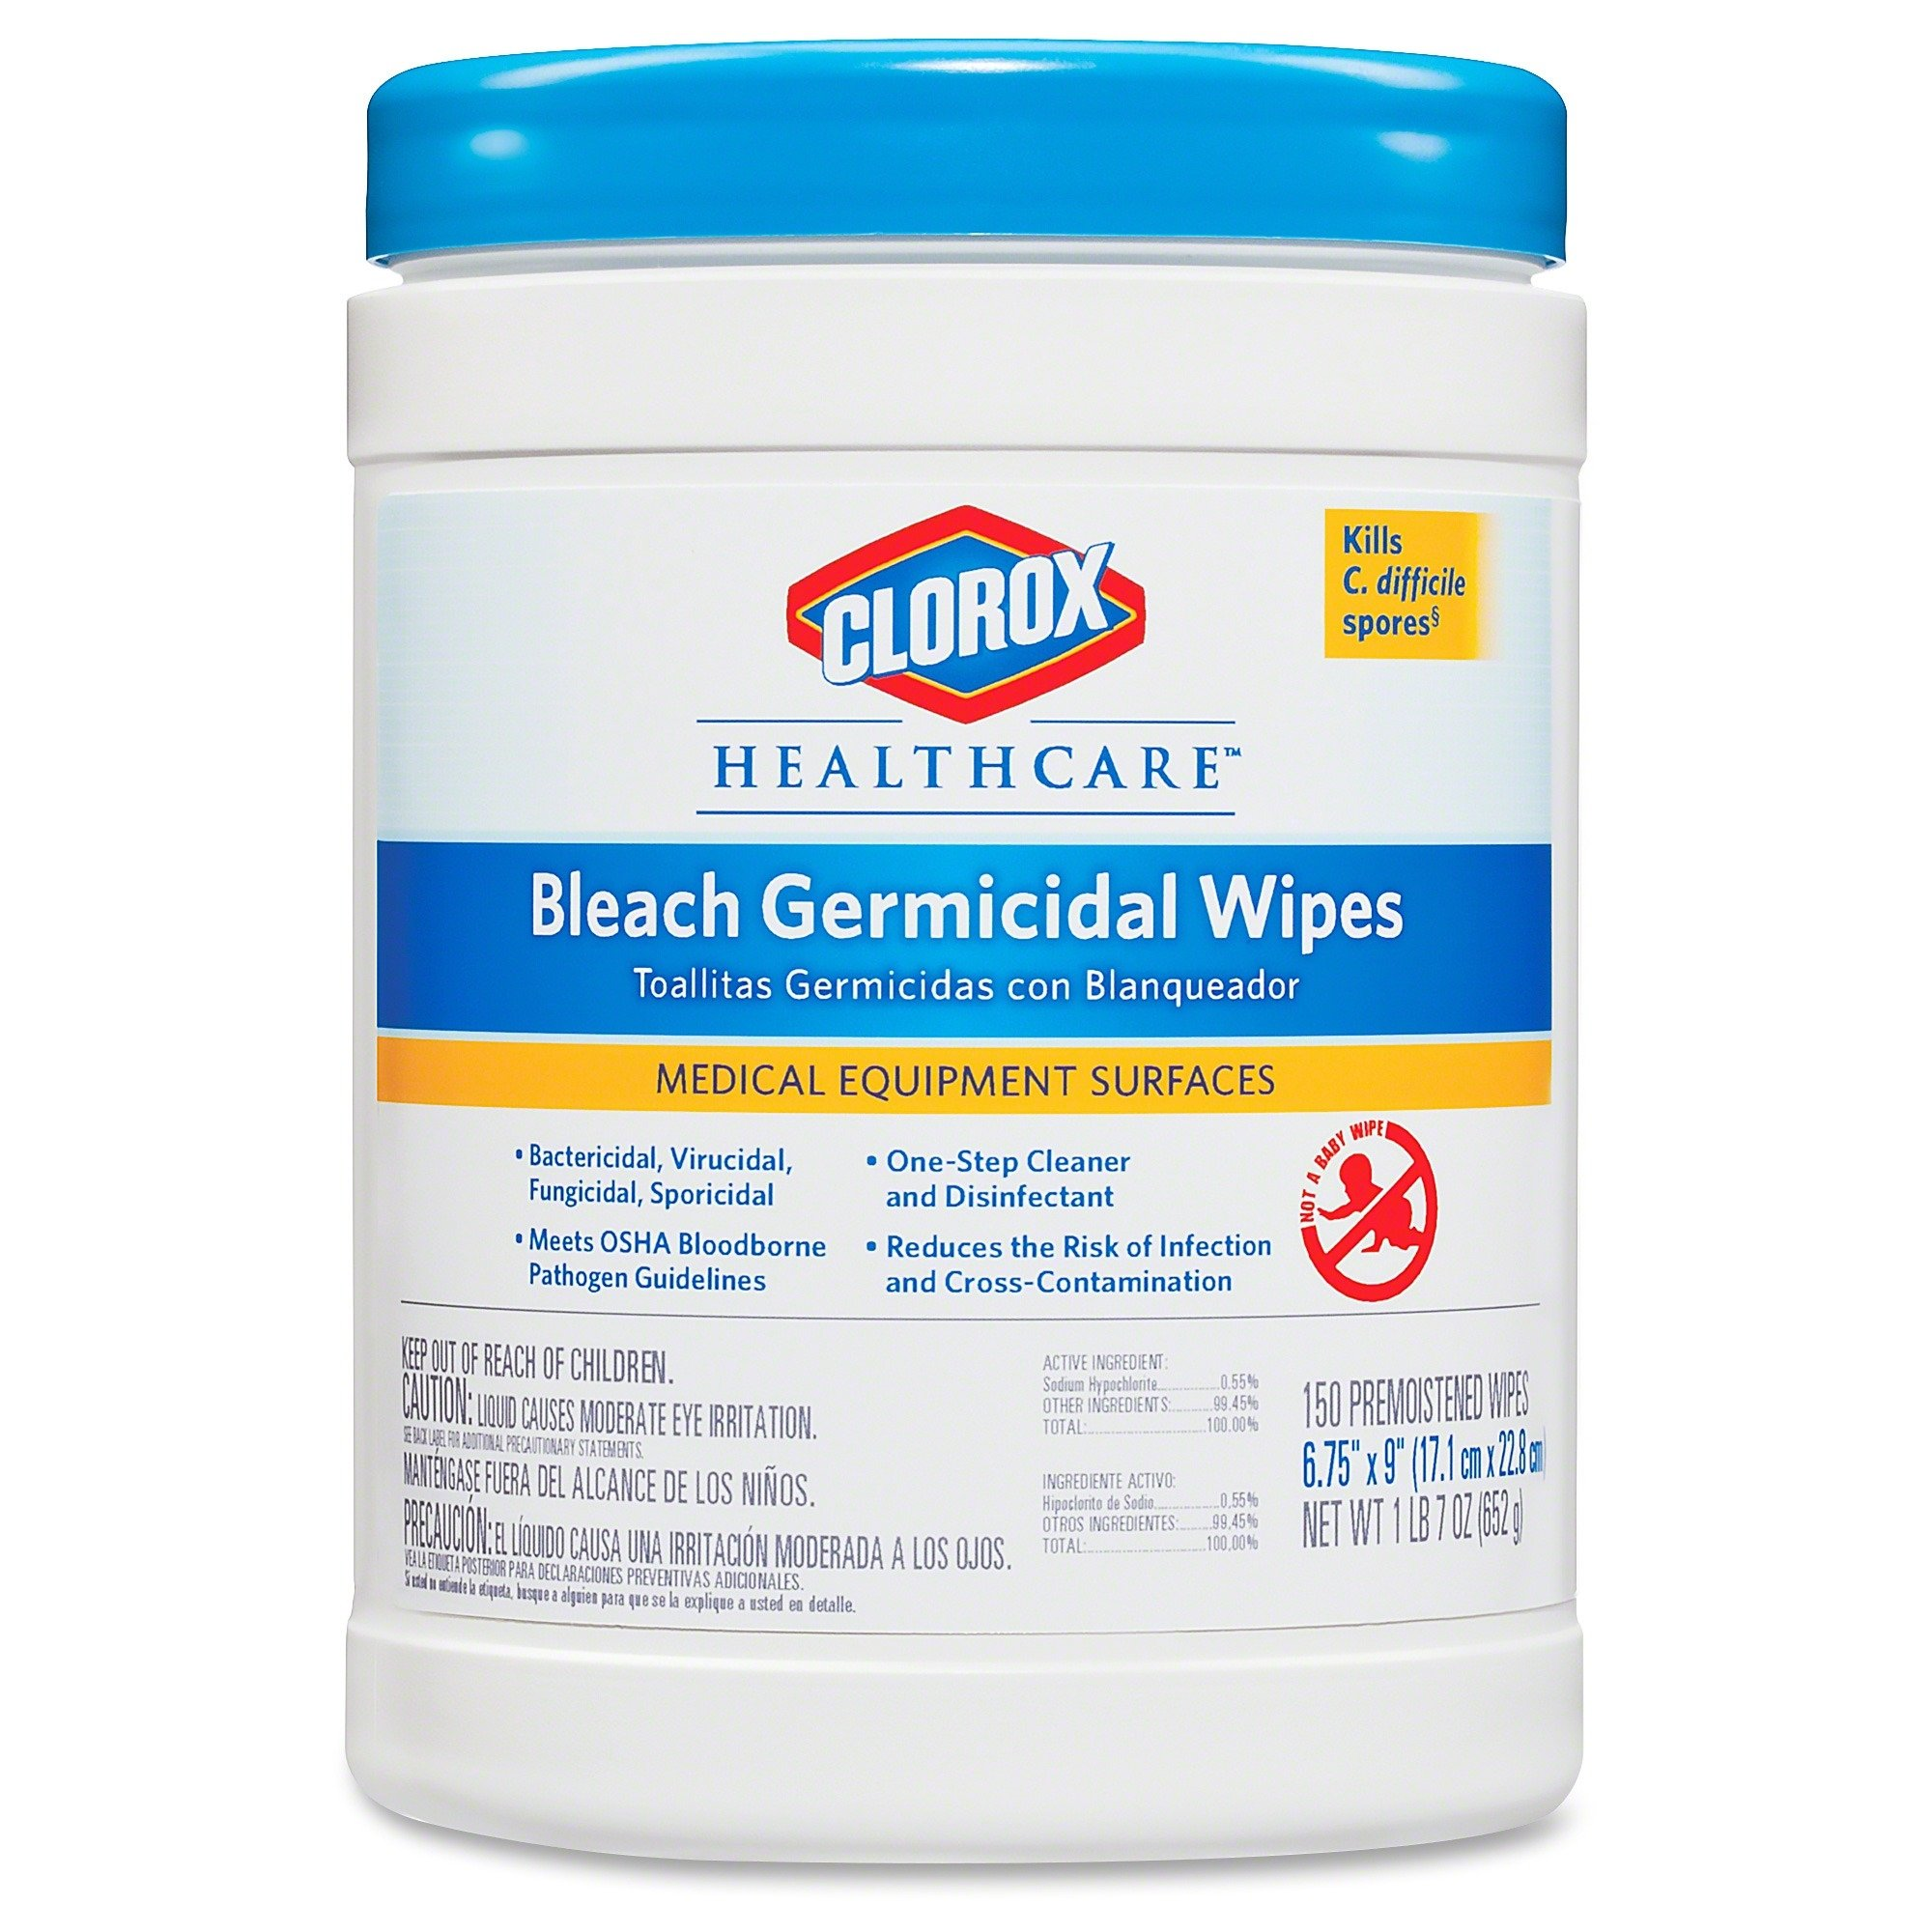 Clorox Healthcare Bleach Germicidal Wipes, 150 Count Canister, 6 Canisters/Case